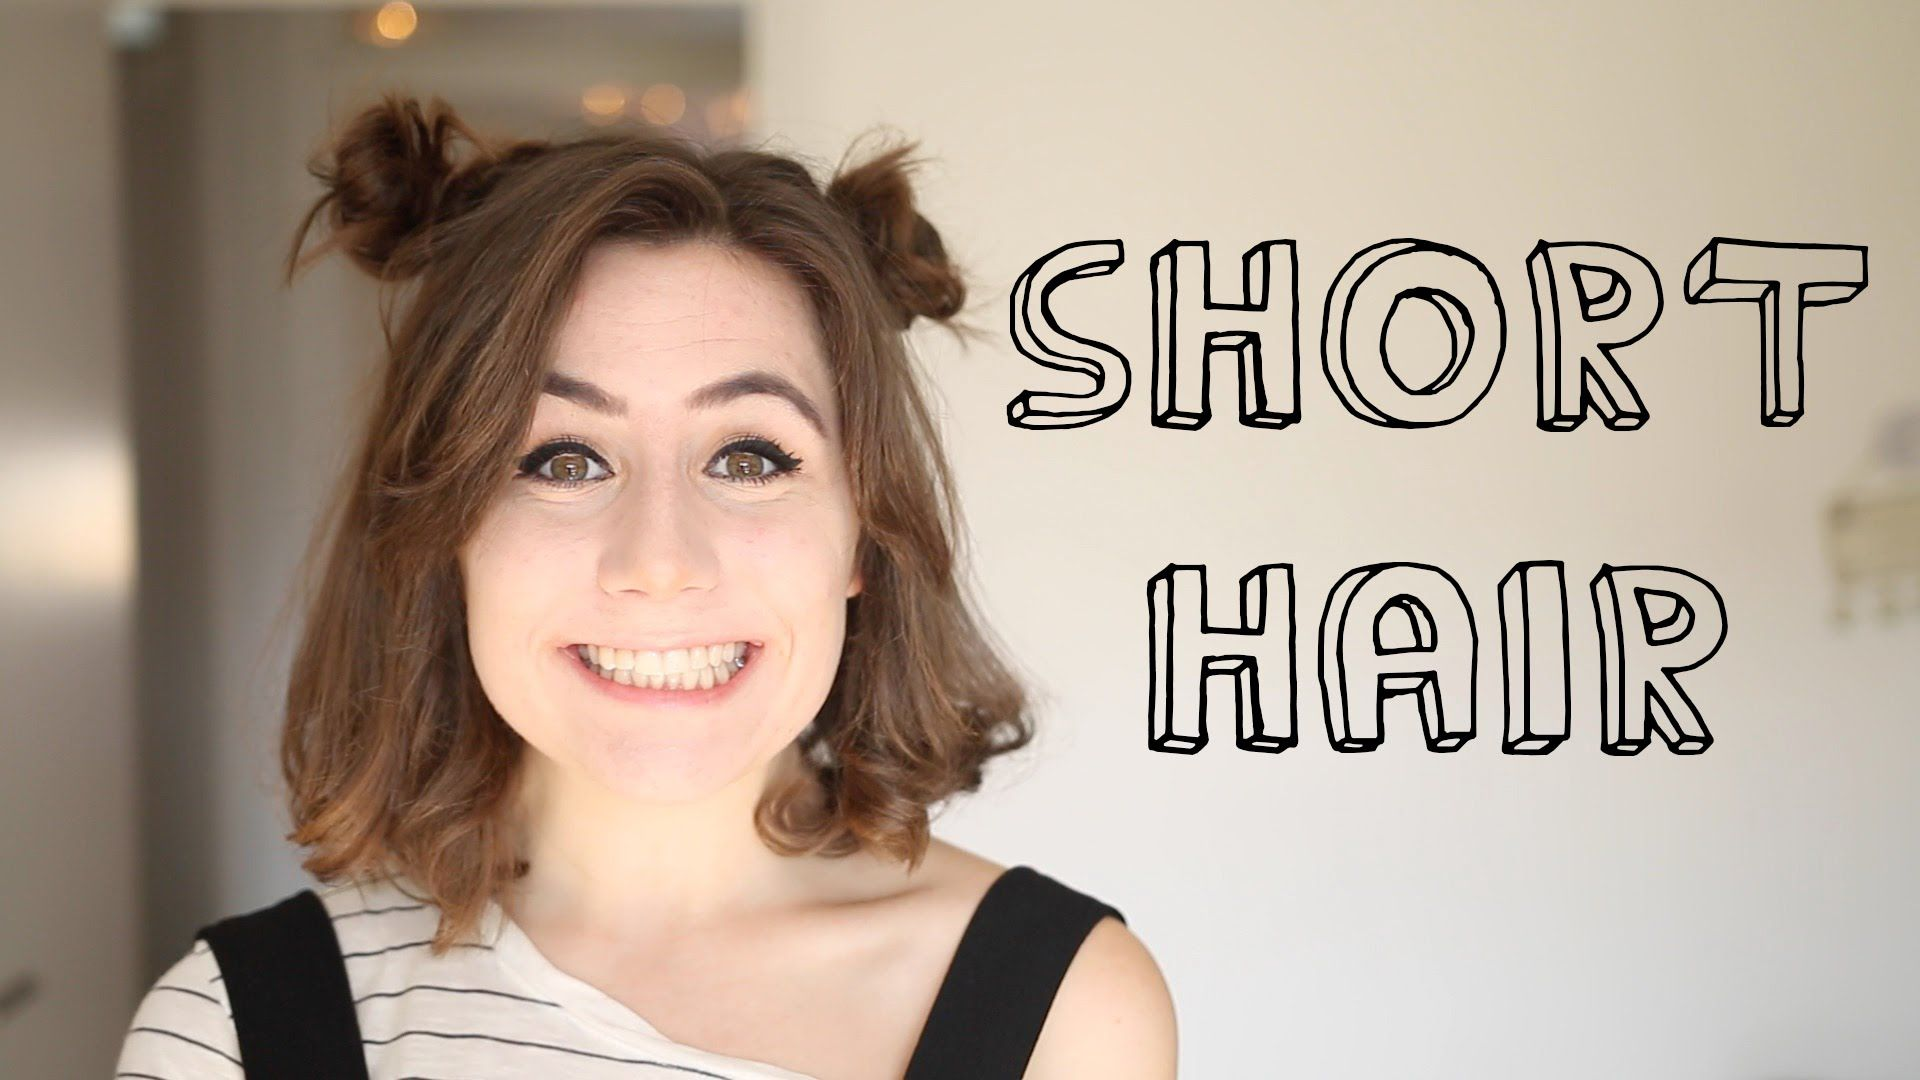 Hairstyles For Short Hair Dodie: Pin Od Ruda Na Hair.